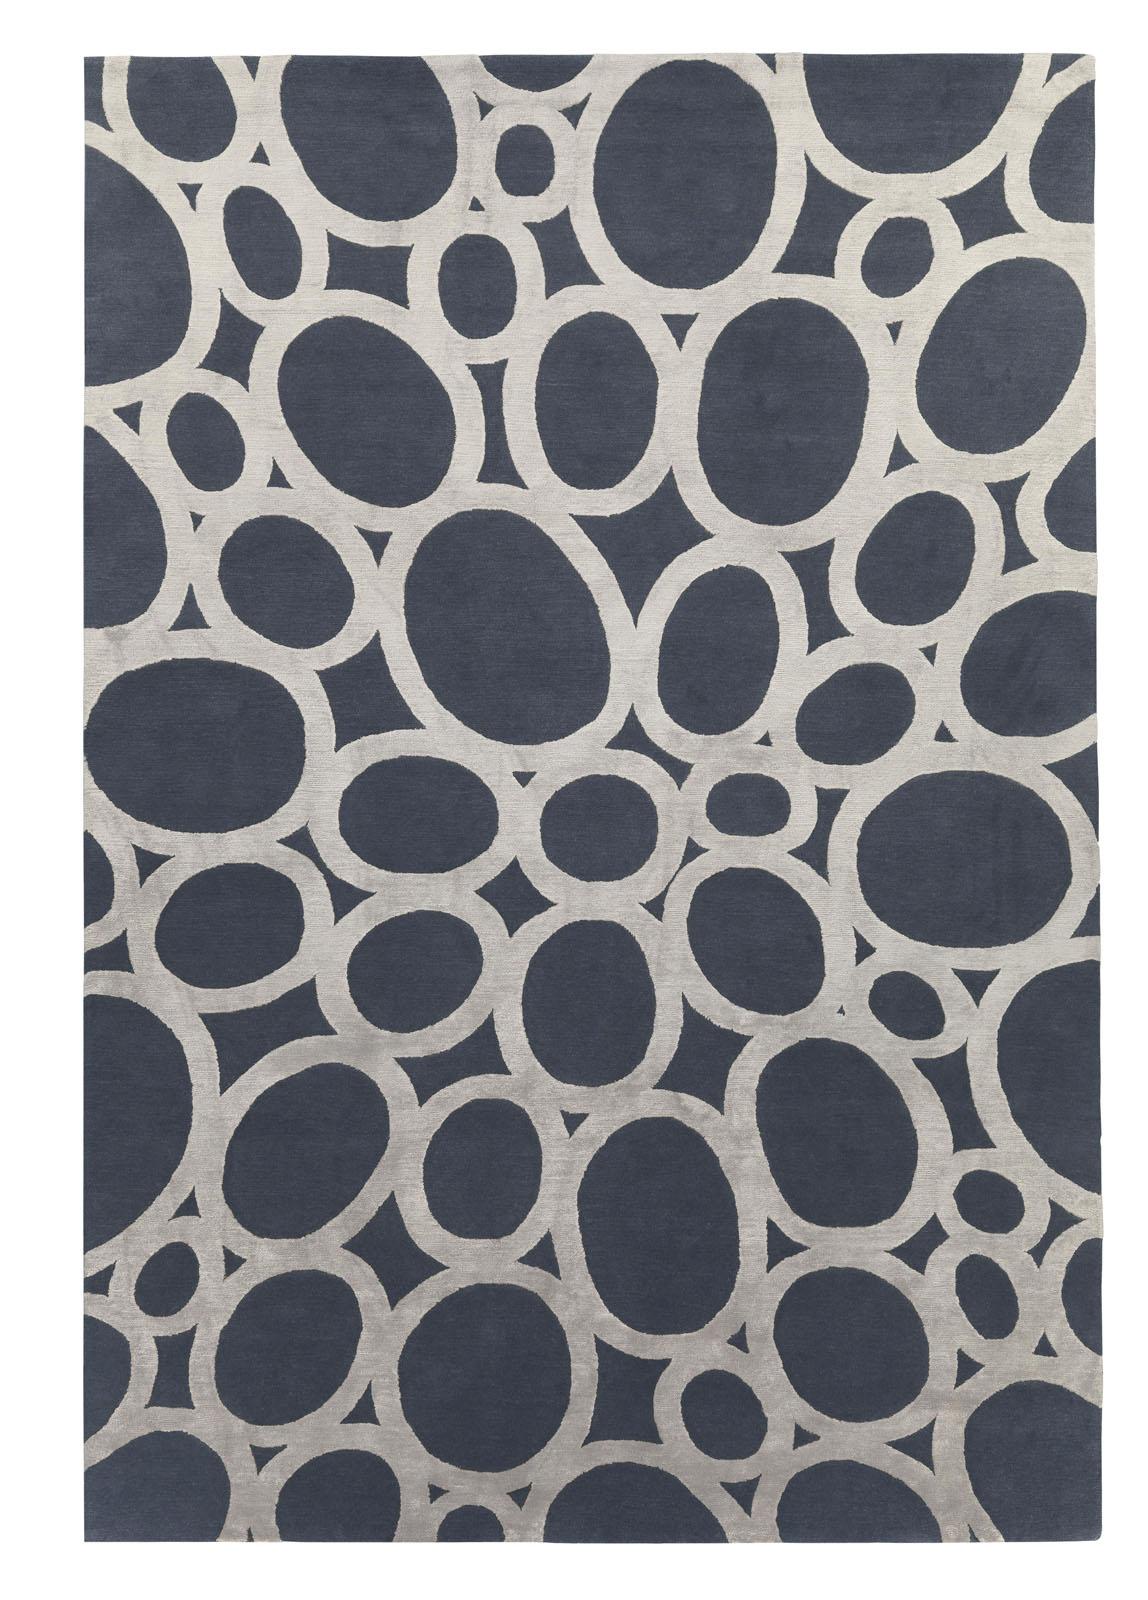 """<a href=""http://www.therugcompany.info/designer-collection/david-rockwell/silver-rings.htm"">Silver Rings</a>"" by David Rockwell for The Rug Company."